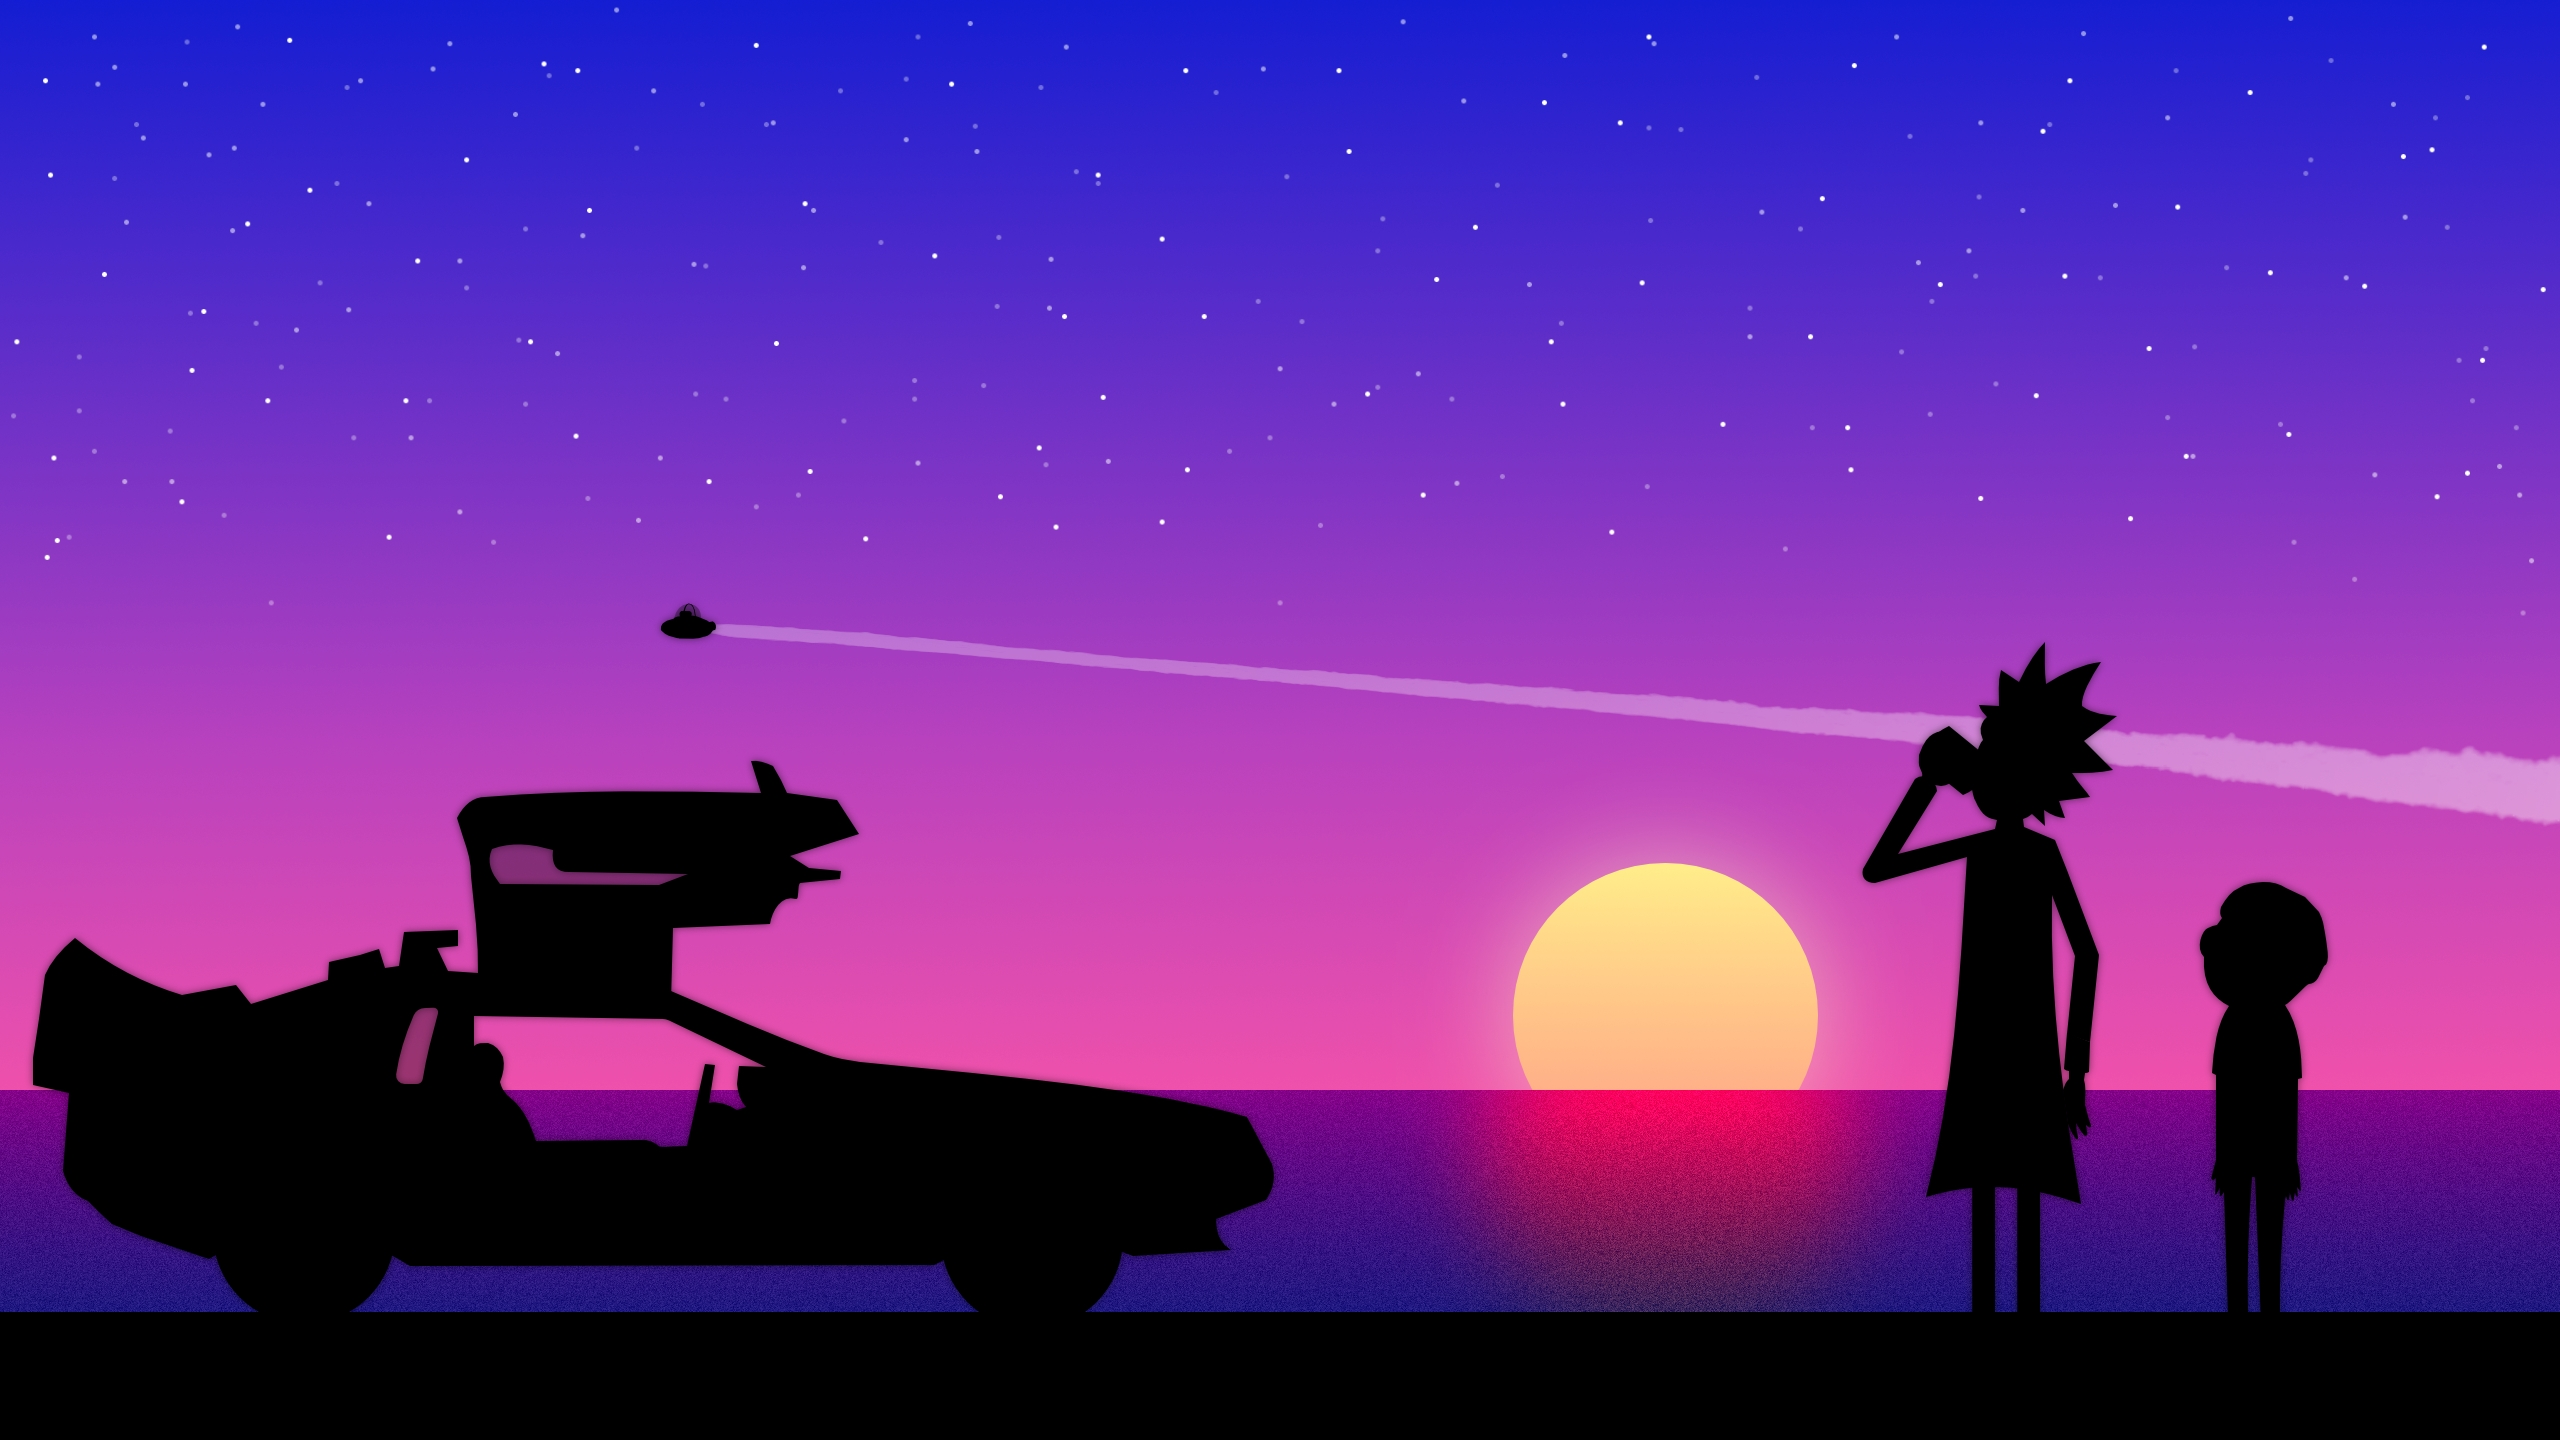 Wallpaper Rick and Morty in sunset